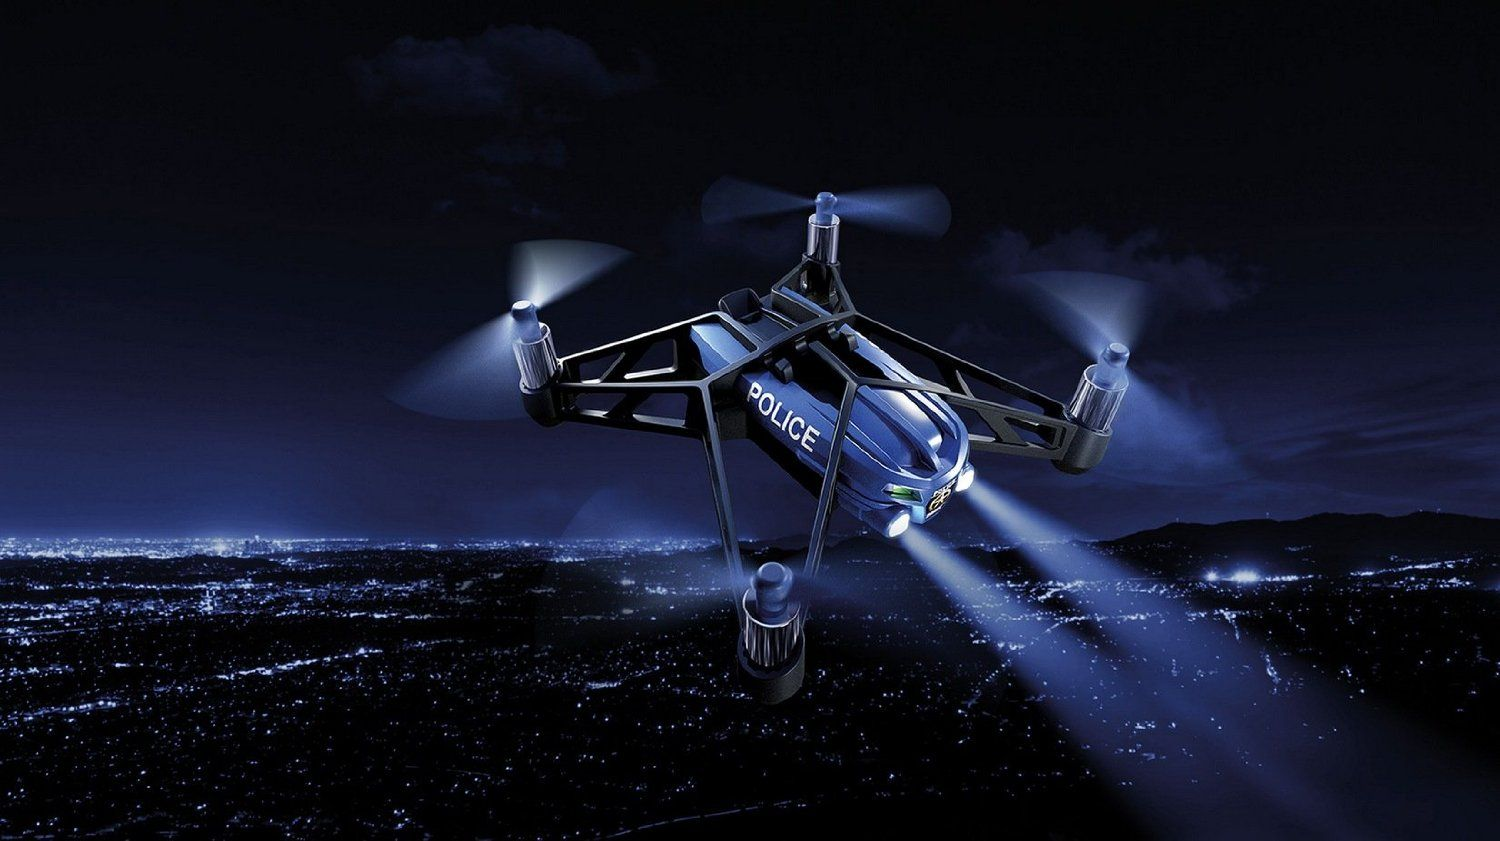 Parrot Airborne Night Drone - MacLane - 12